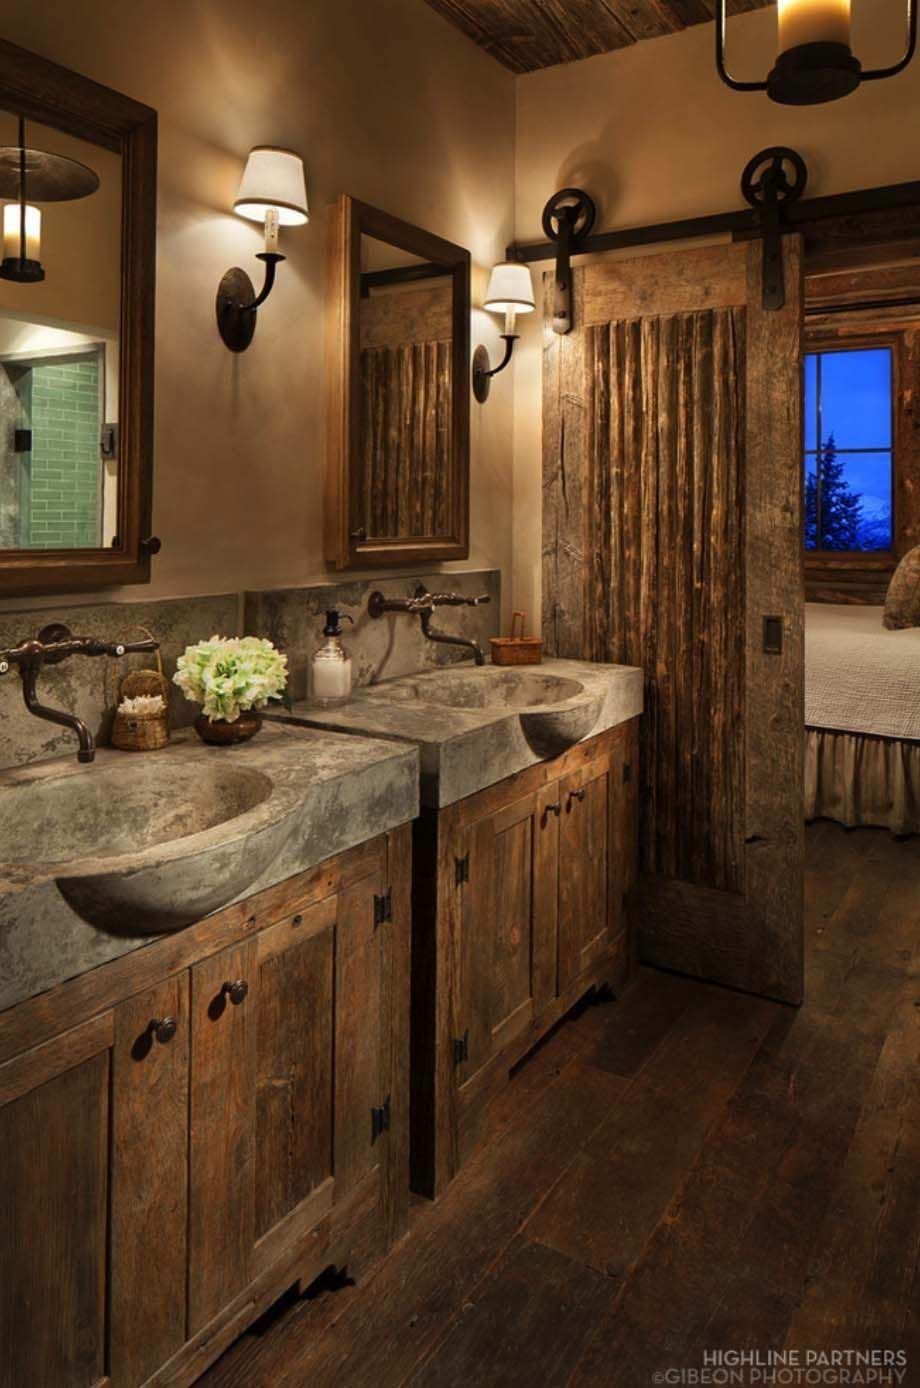 rustic bathroom dcor with concrete sinks and barn door - Rustic Bathroom